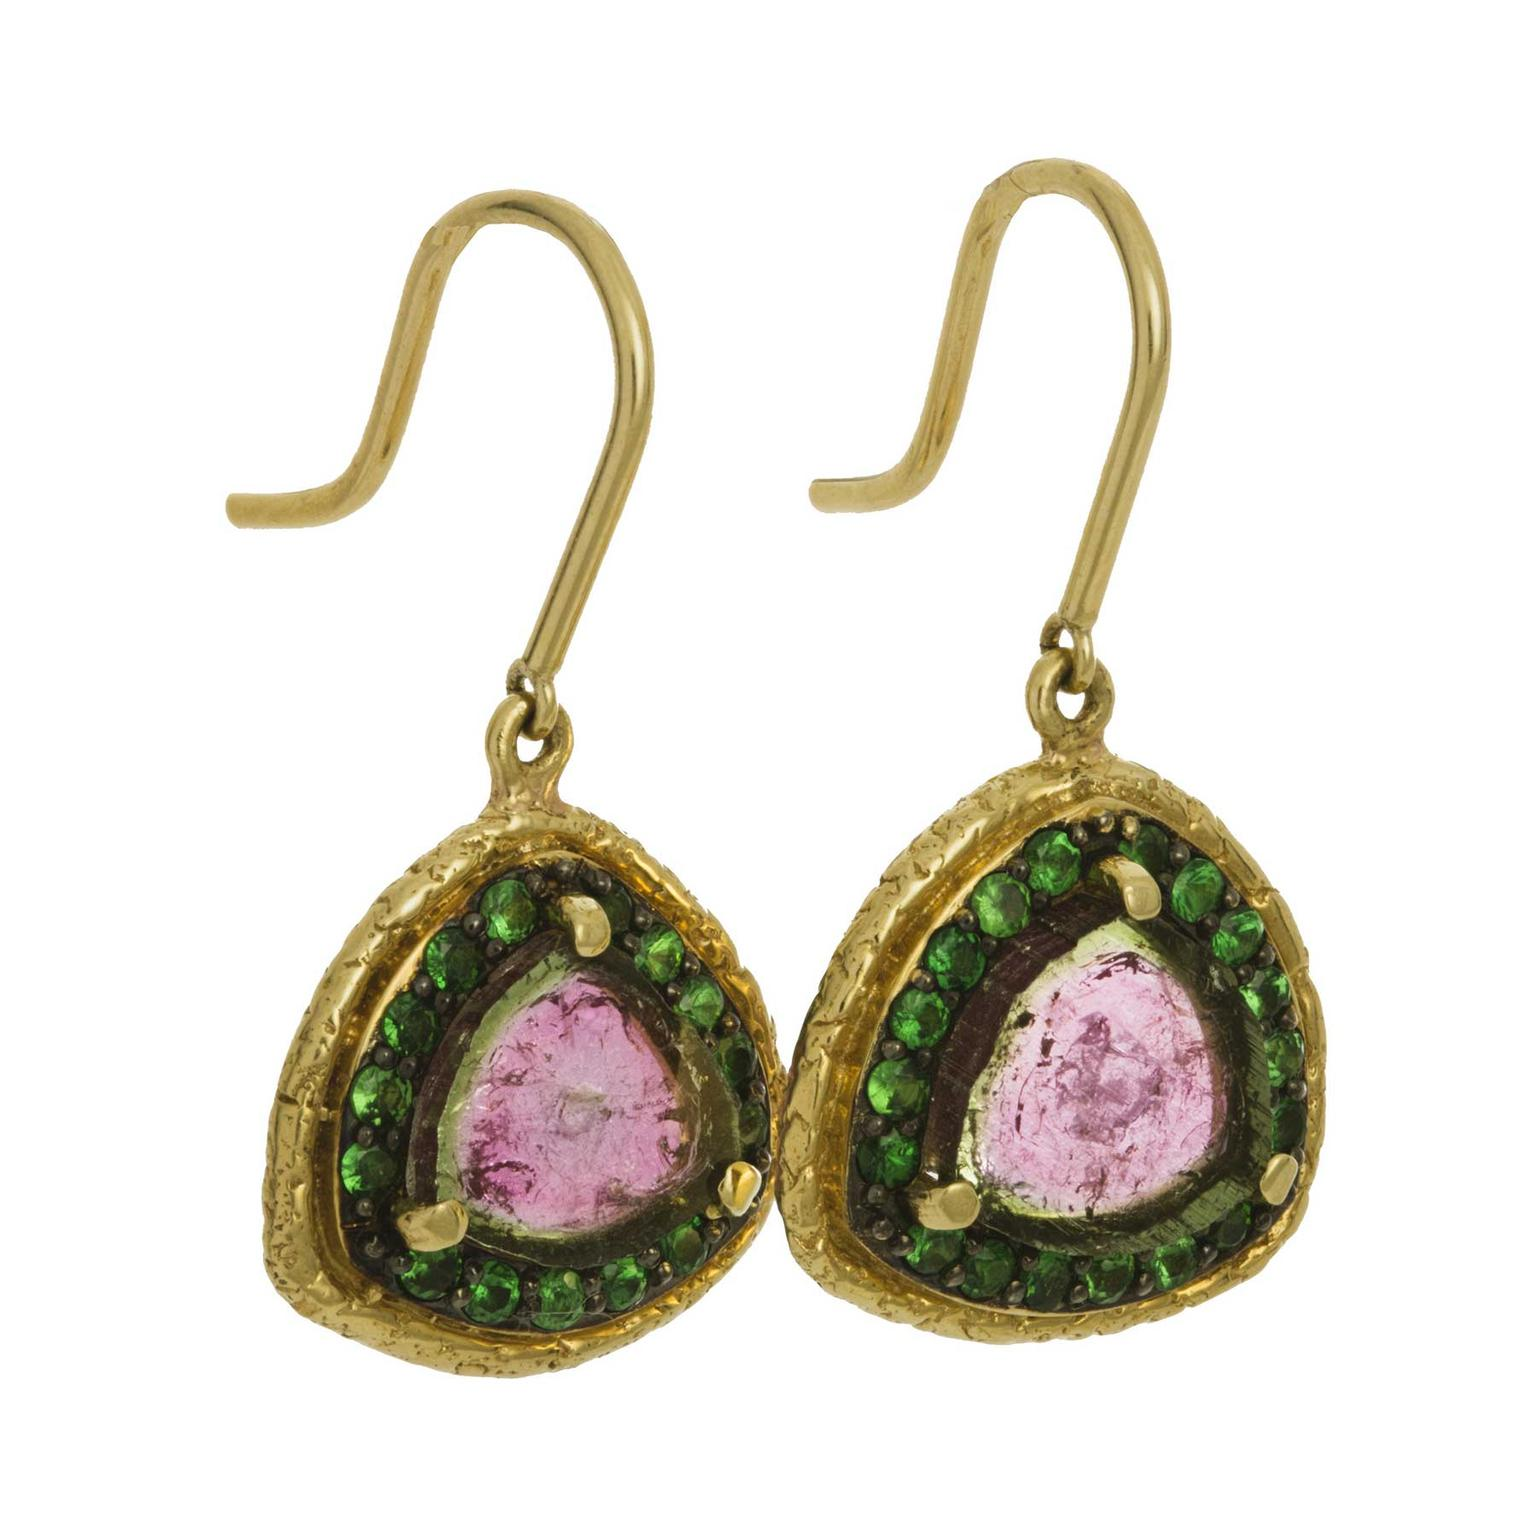 Susan Wheeler Watermelon tourmaline earrings